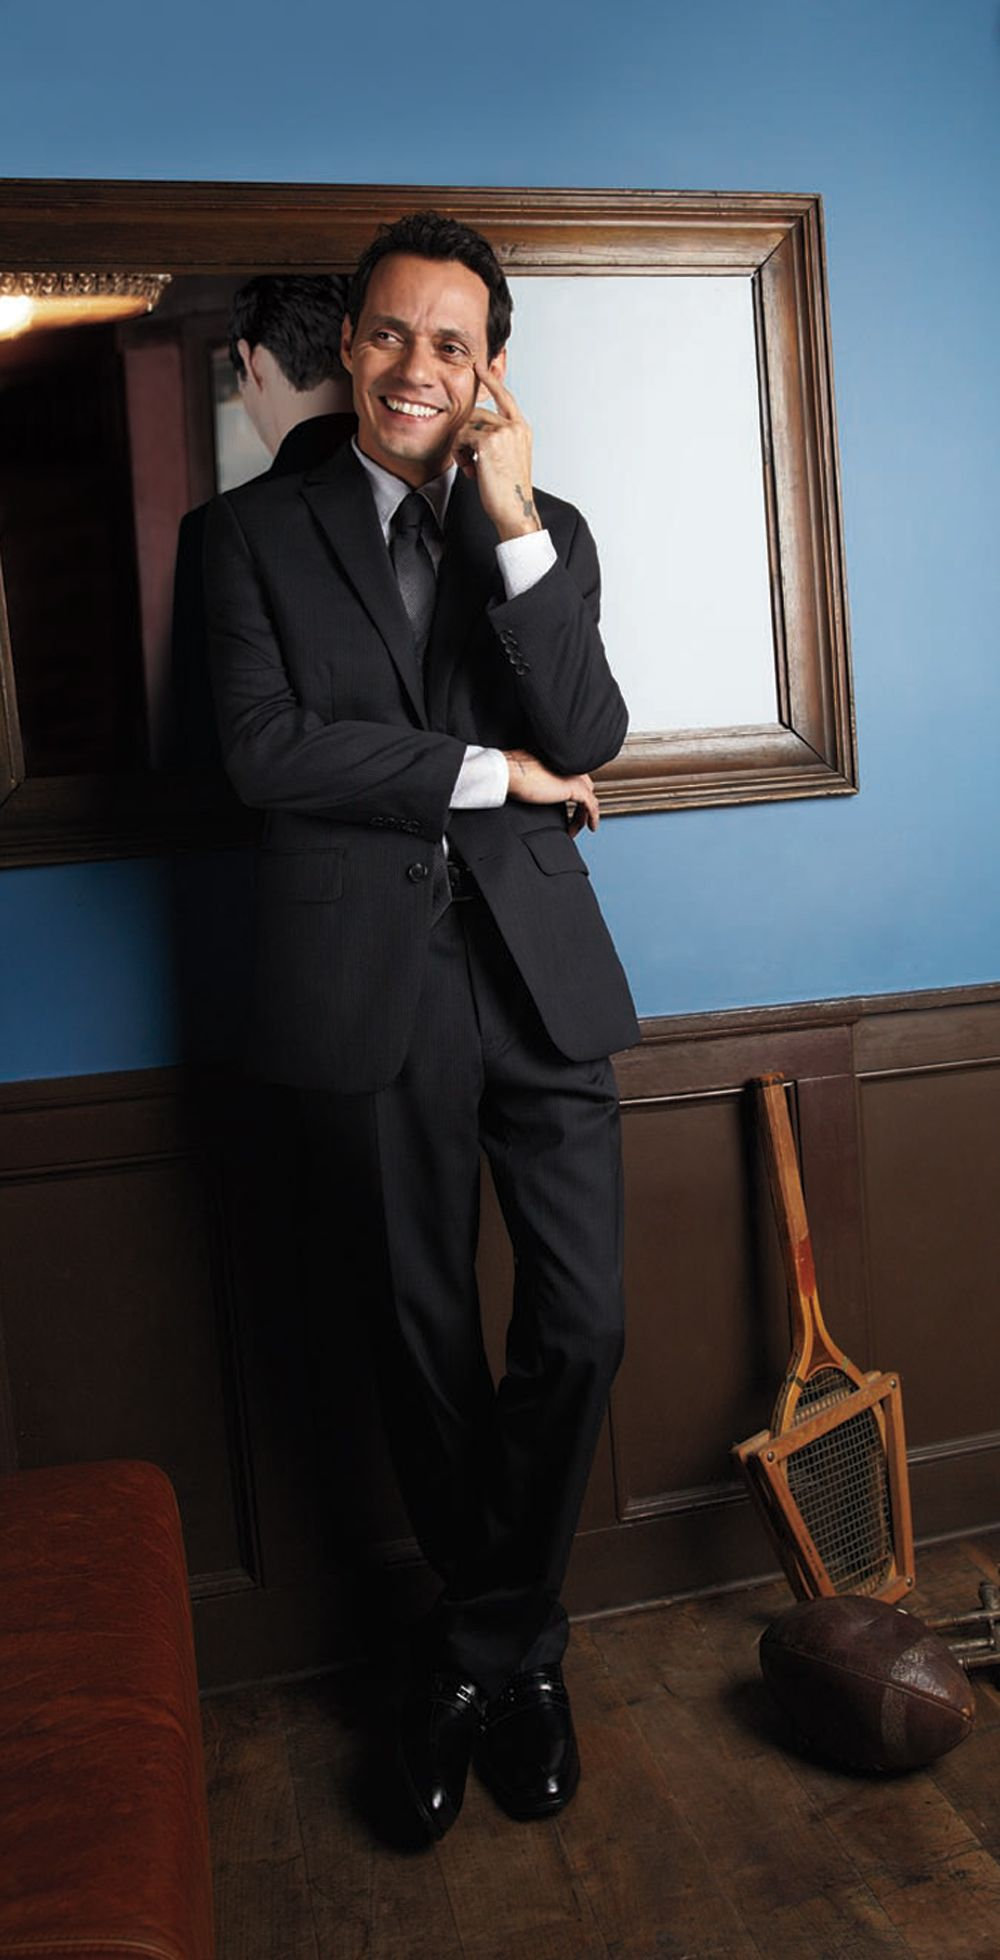 The Marc Anthony collection impresses with its tailored looks ...